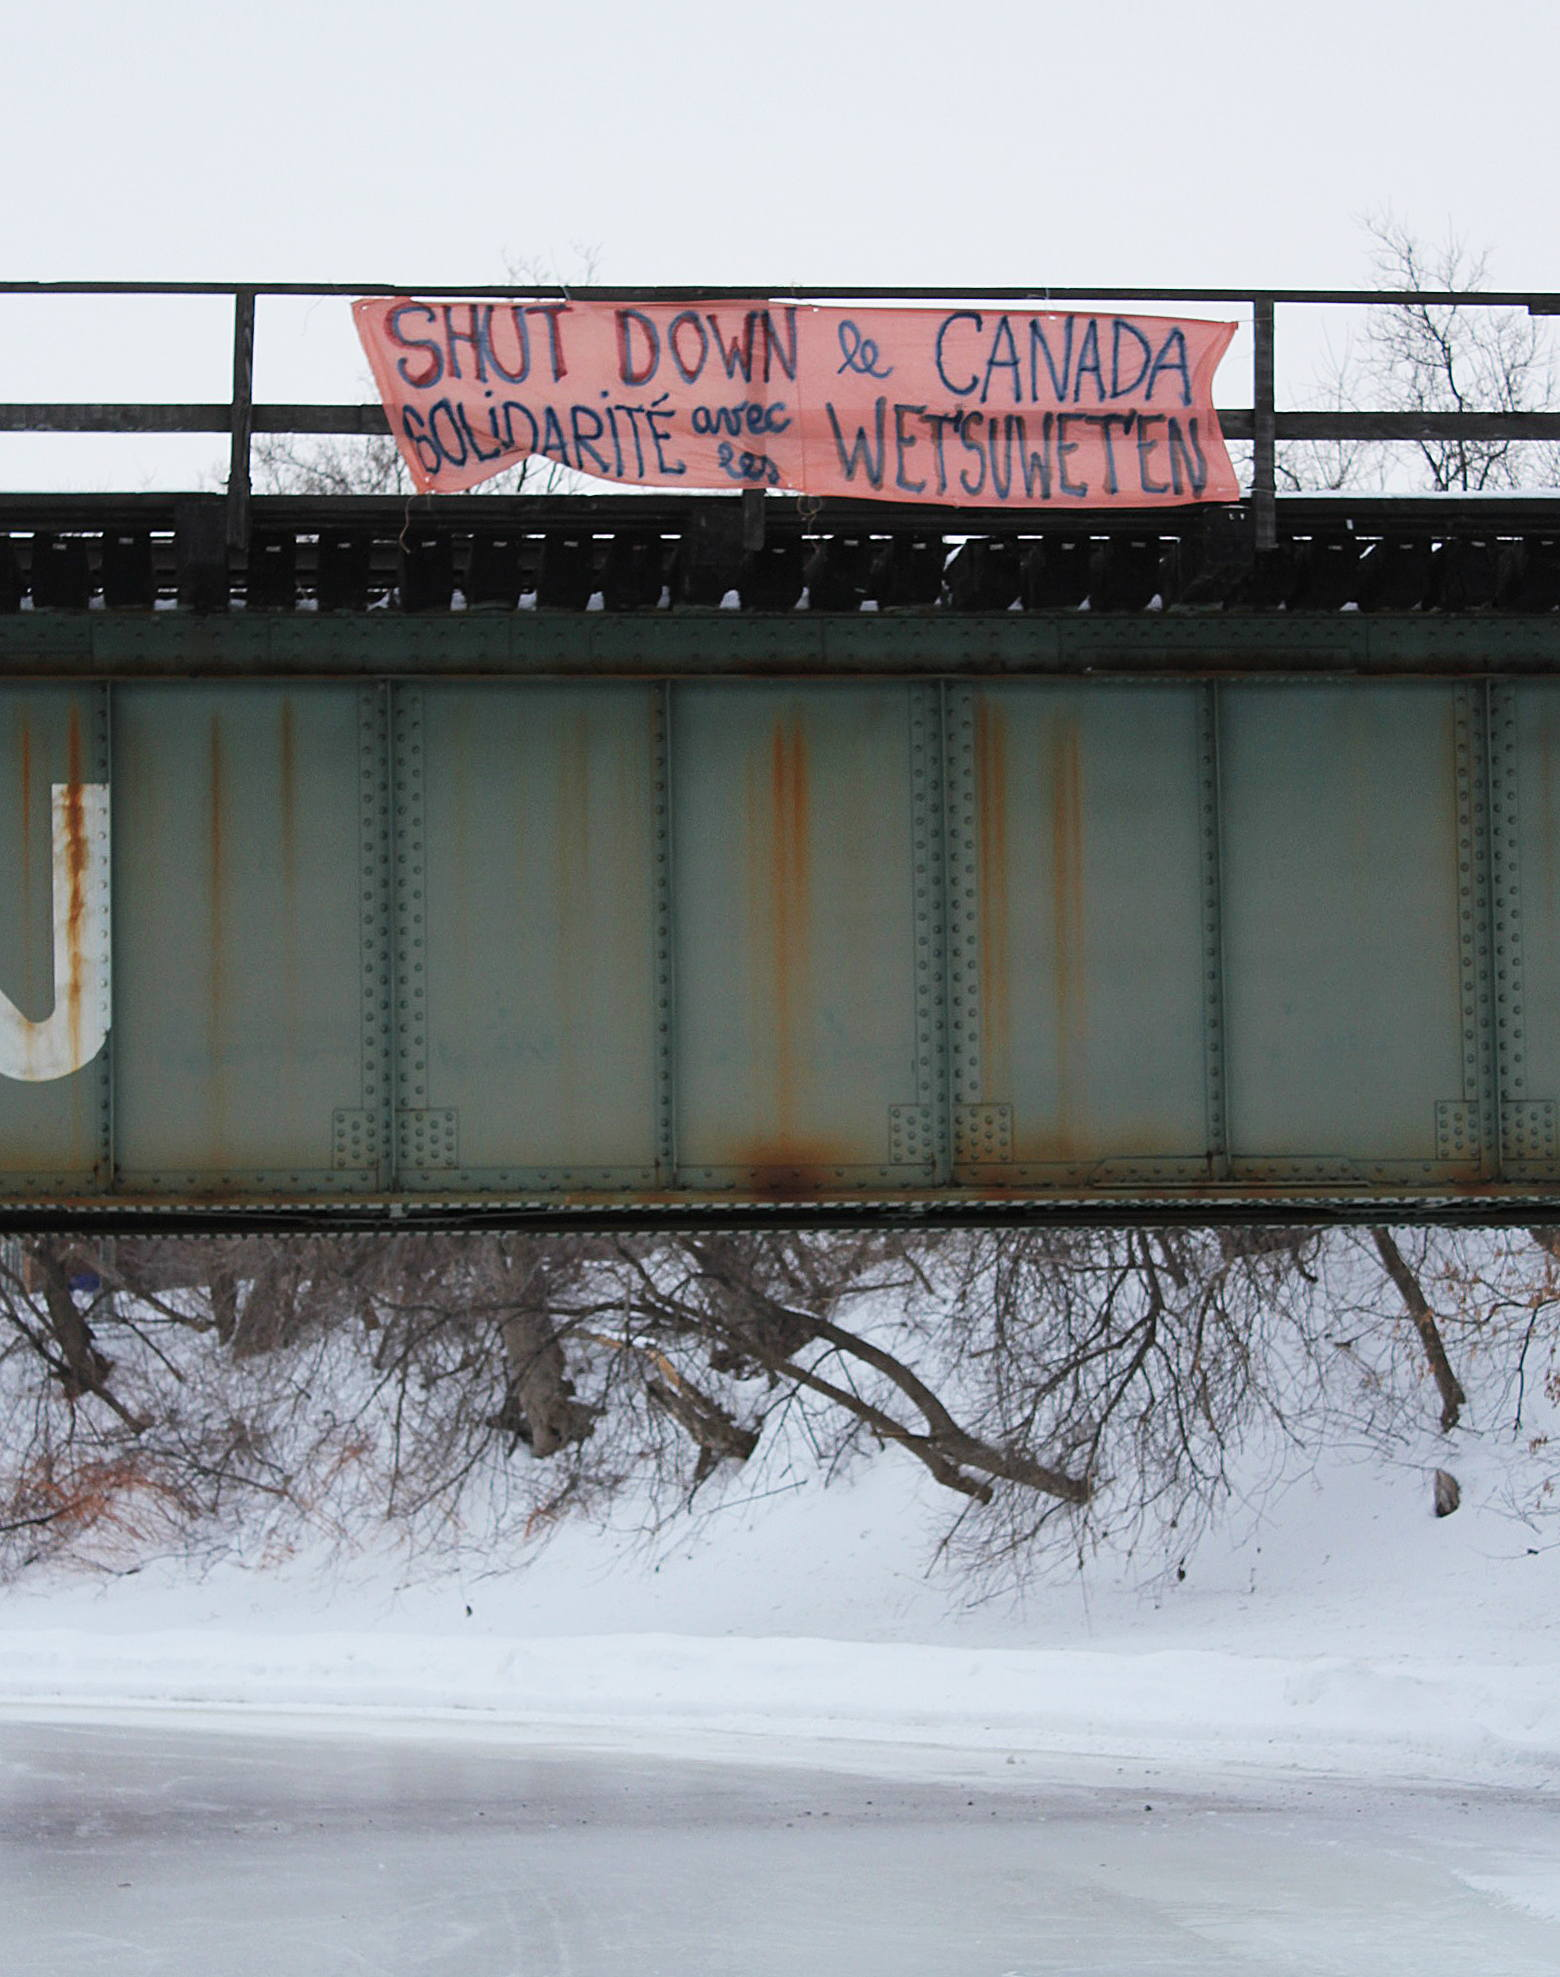 A Banner in Solidarity with the Wet'suwet'en People